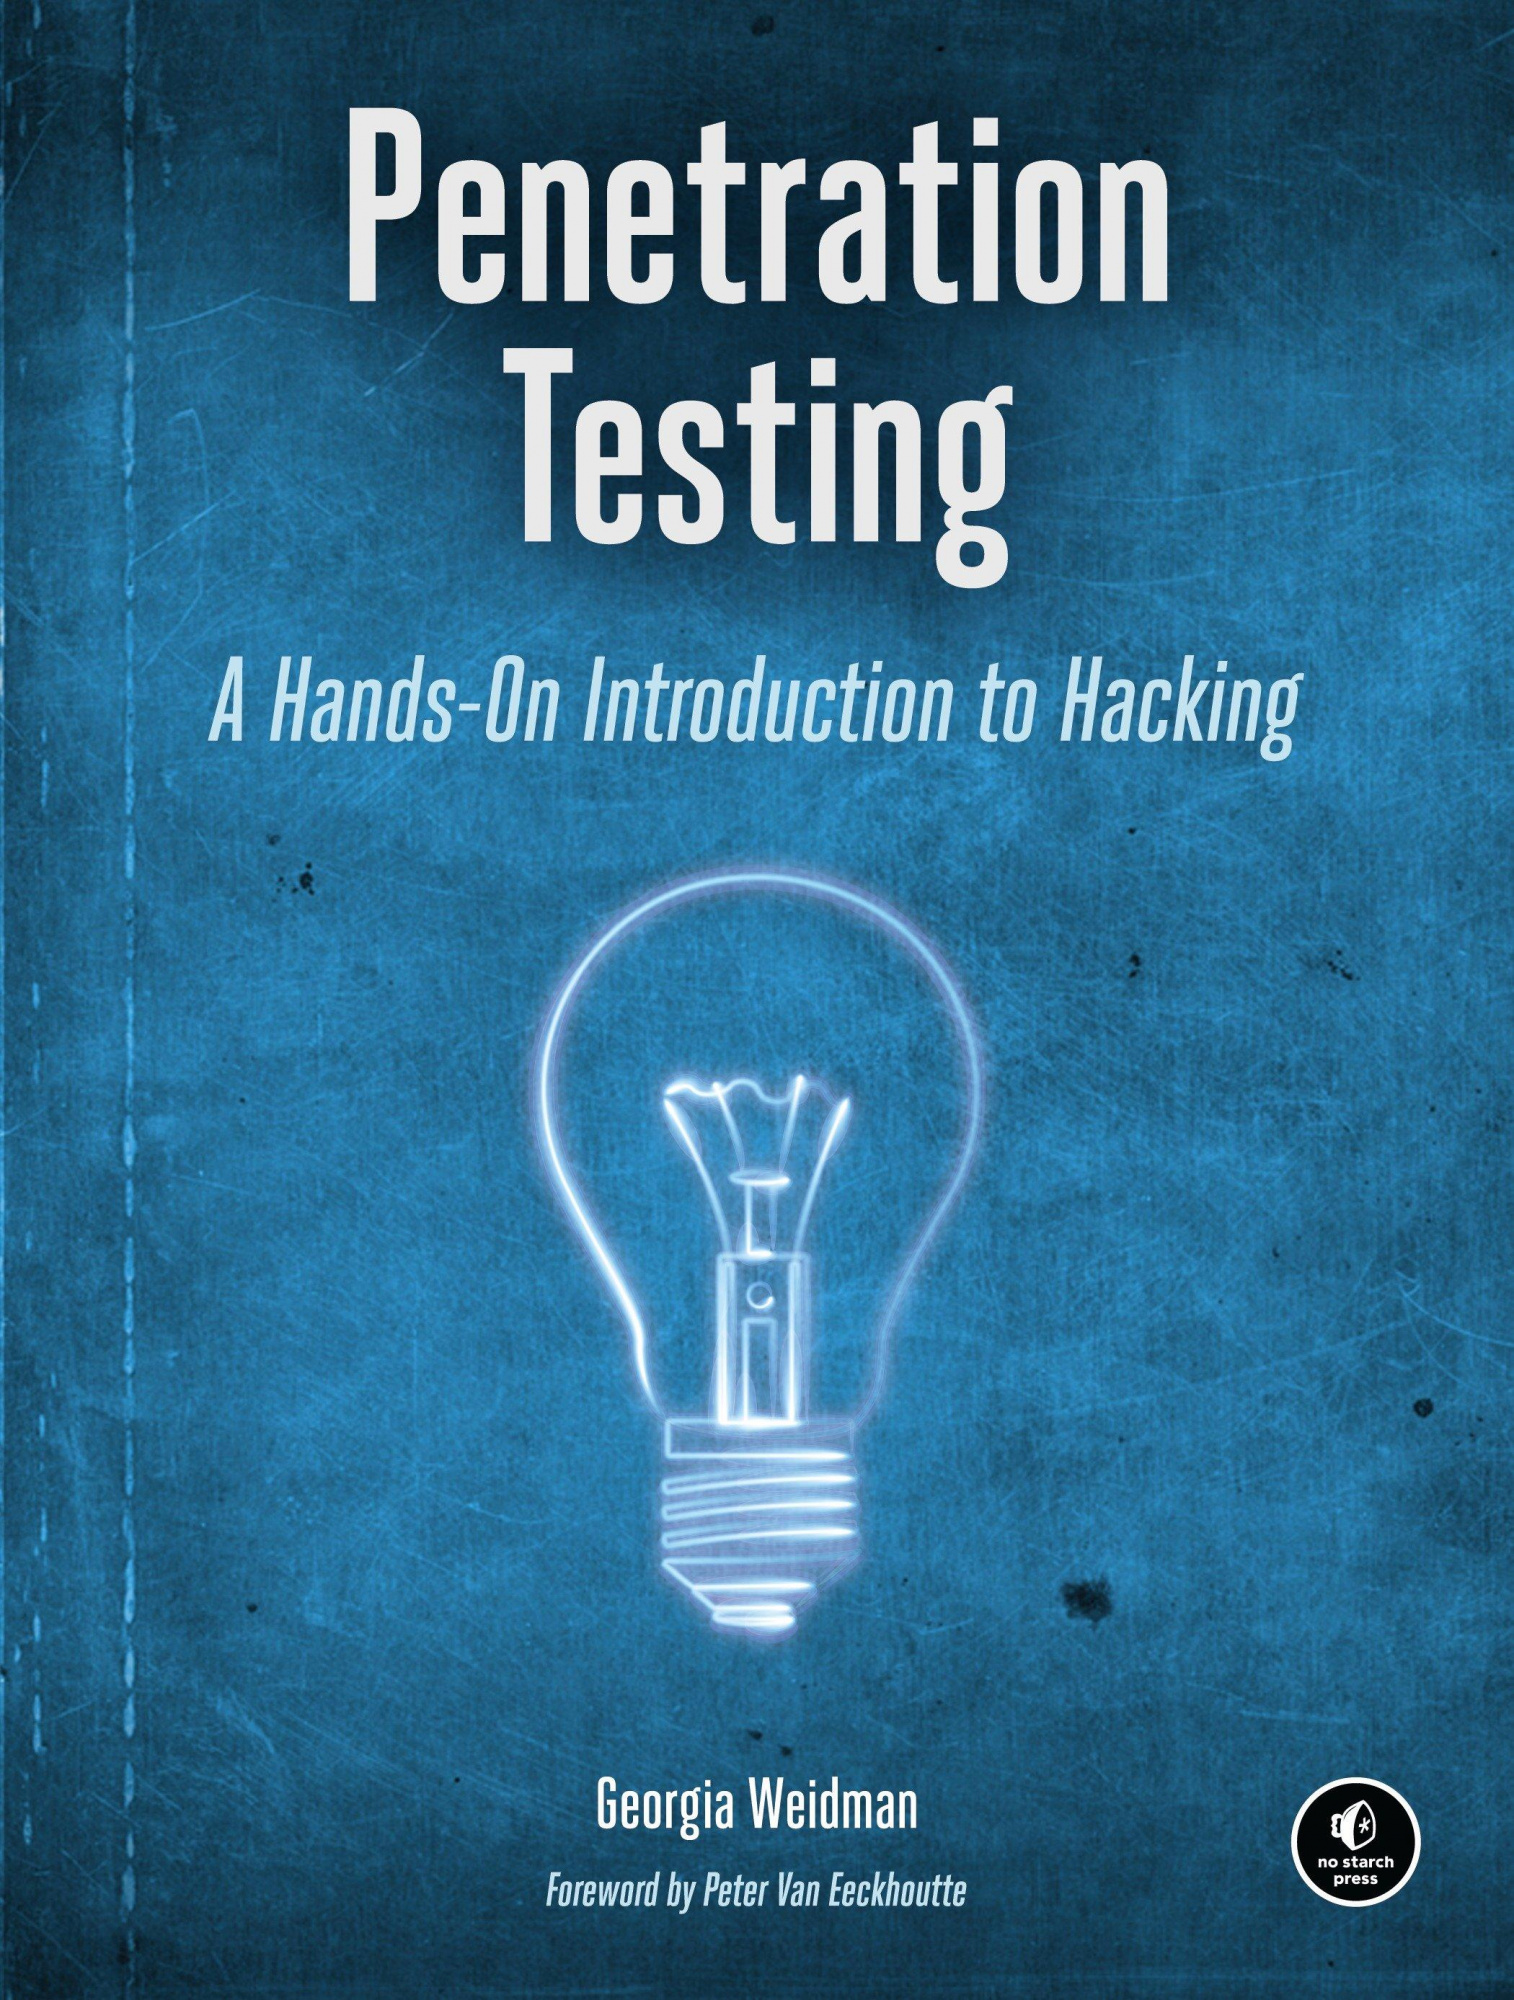 Penetration Testing: A Hands-On Introduction to Hacking by Georgia Weidman, ISBN: 9781593275648